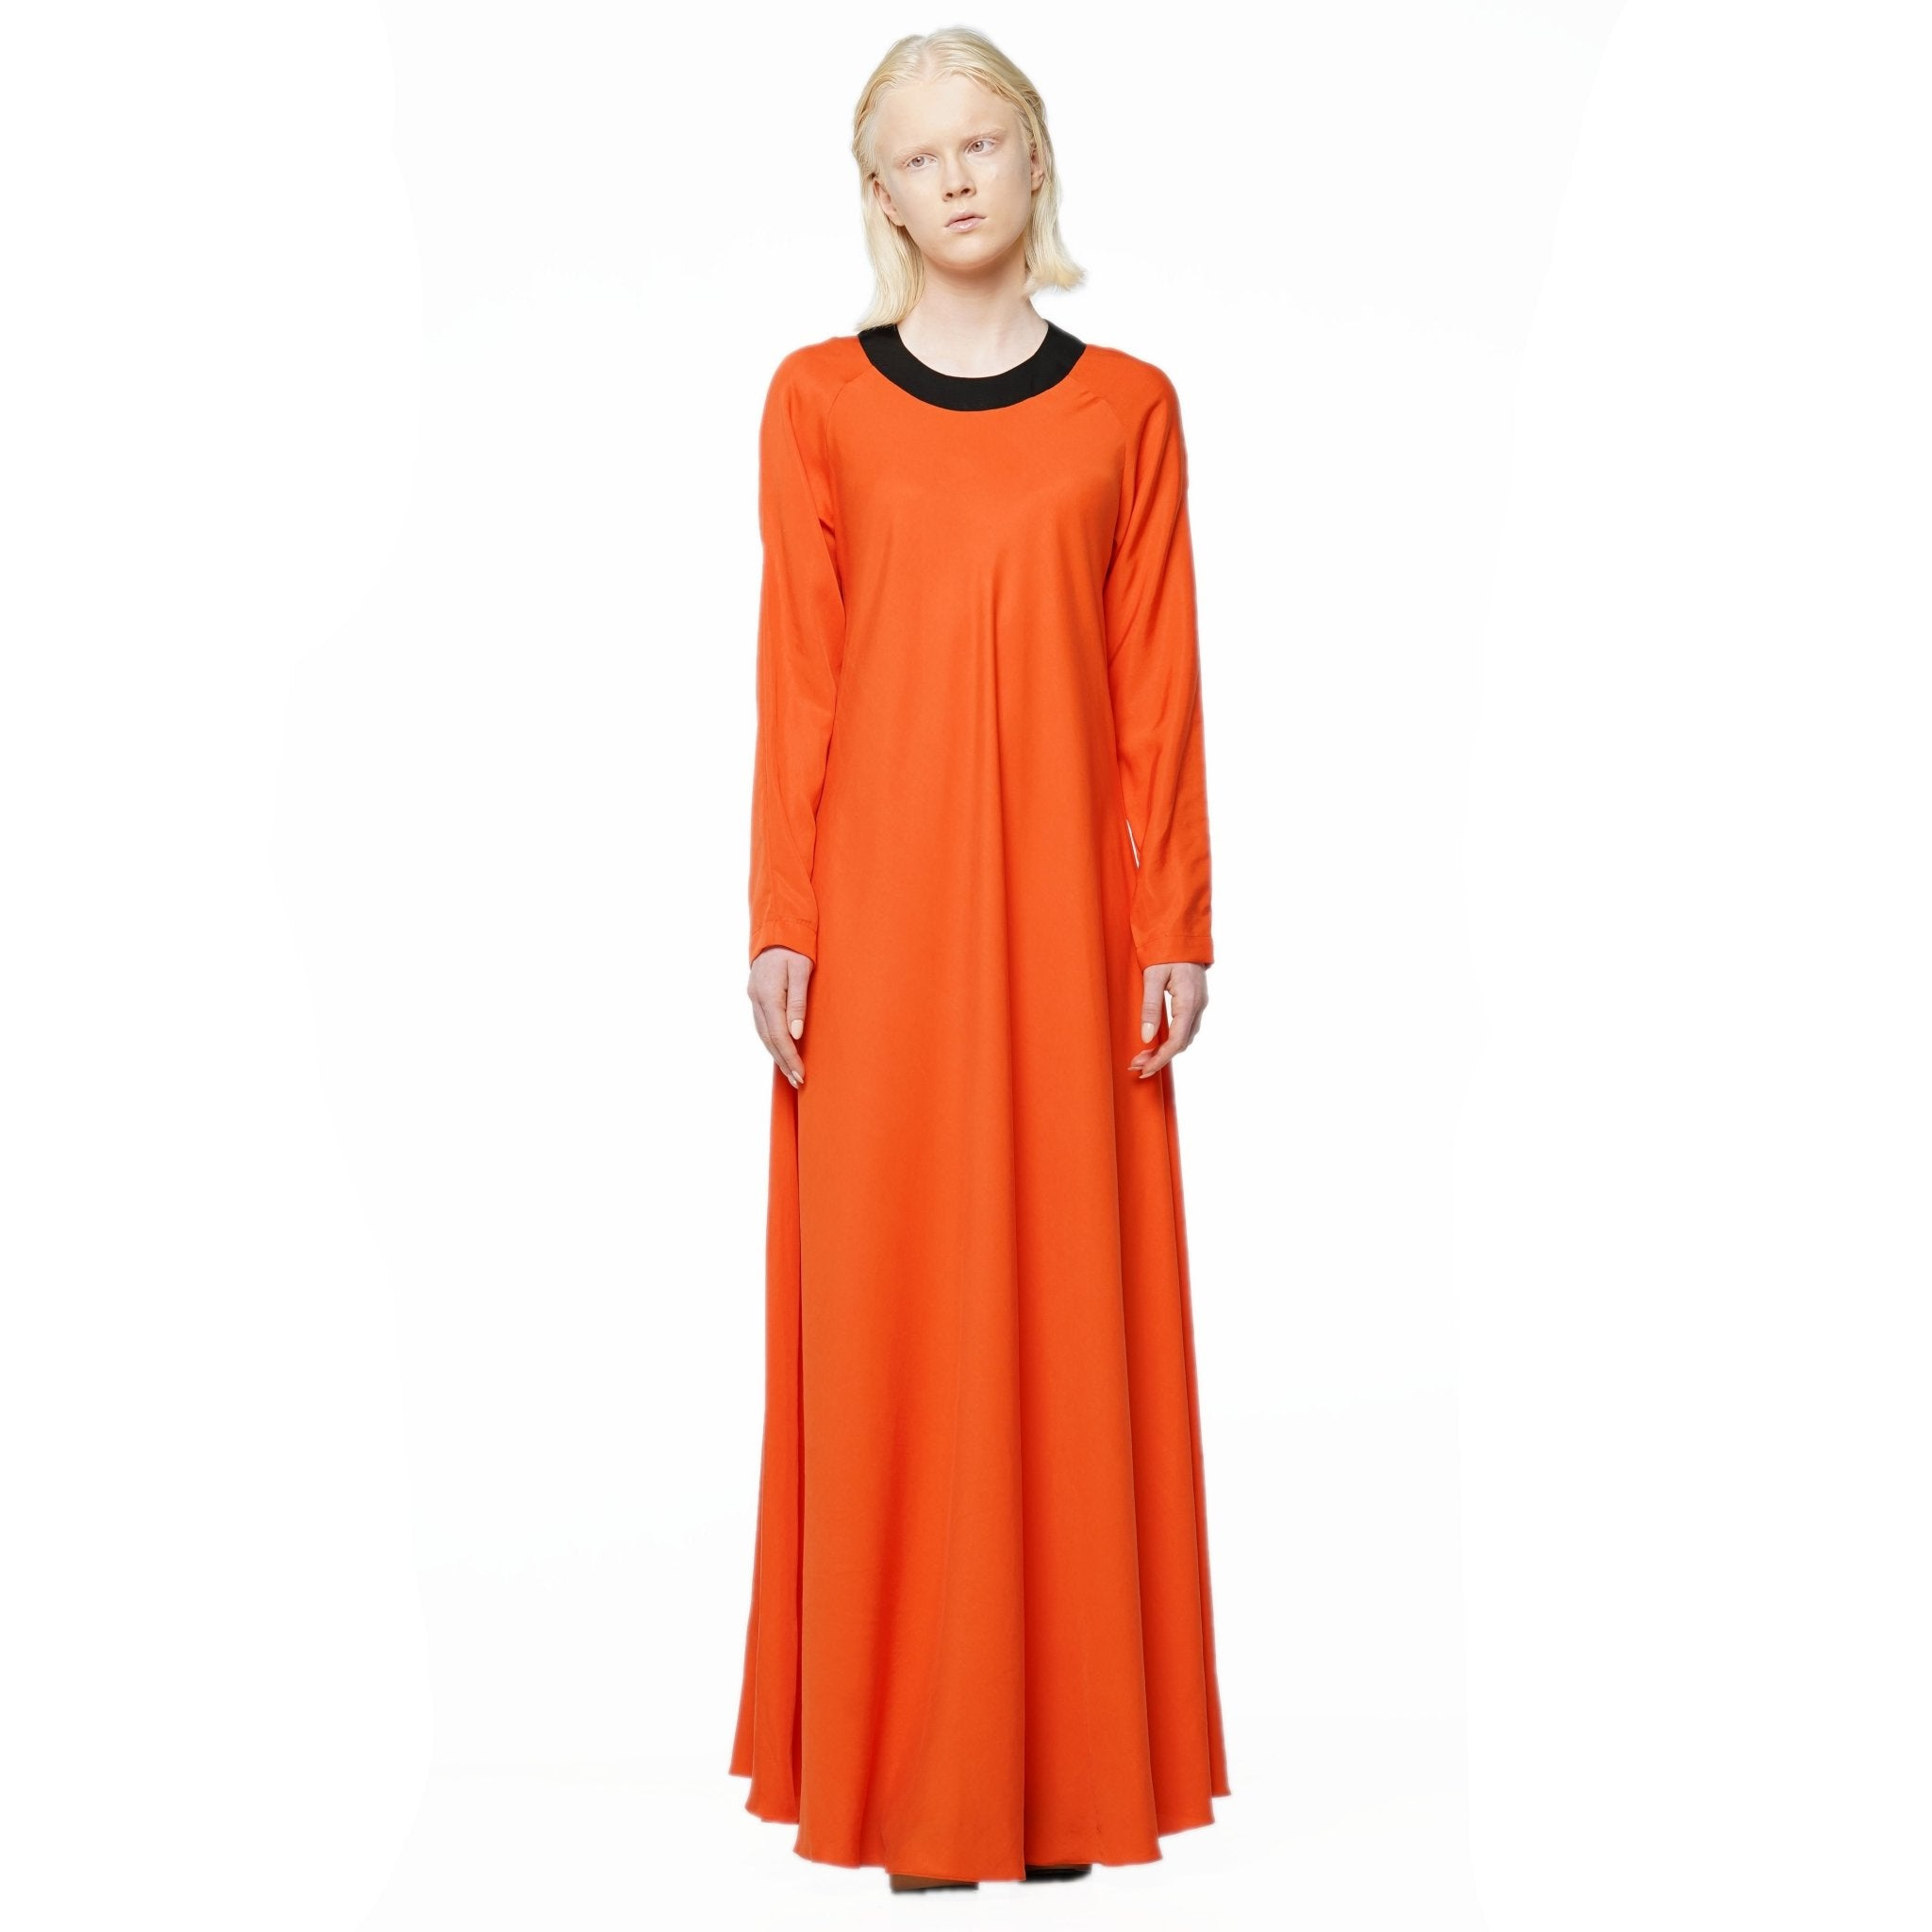 Orange tencel maxi dress - The Clothing LoungeKO by Kolotiy